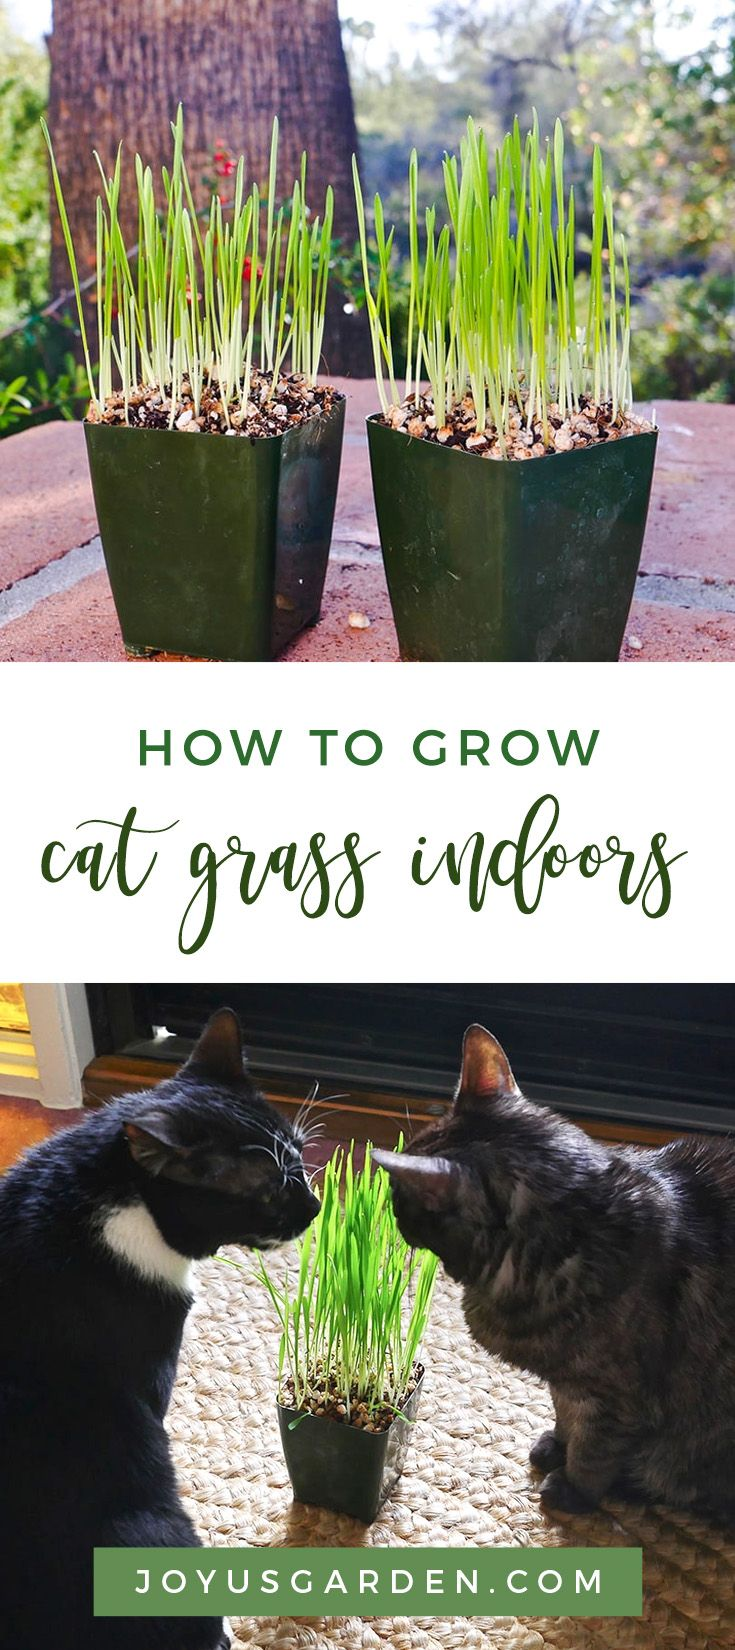 How to grow cat grass indoors so easy to do from seed in